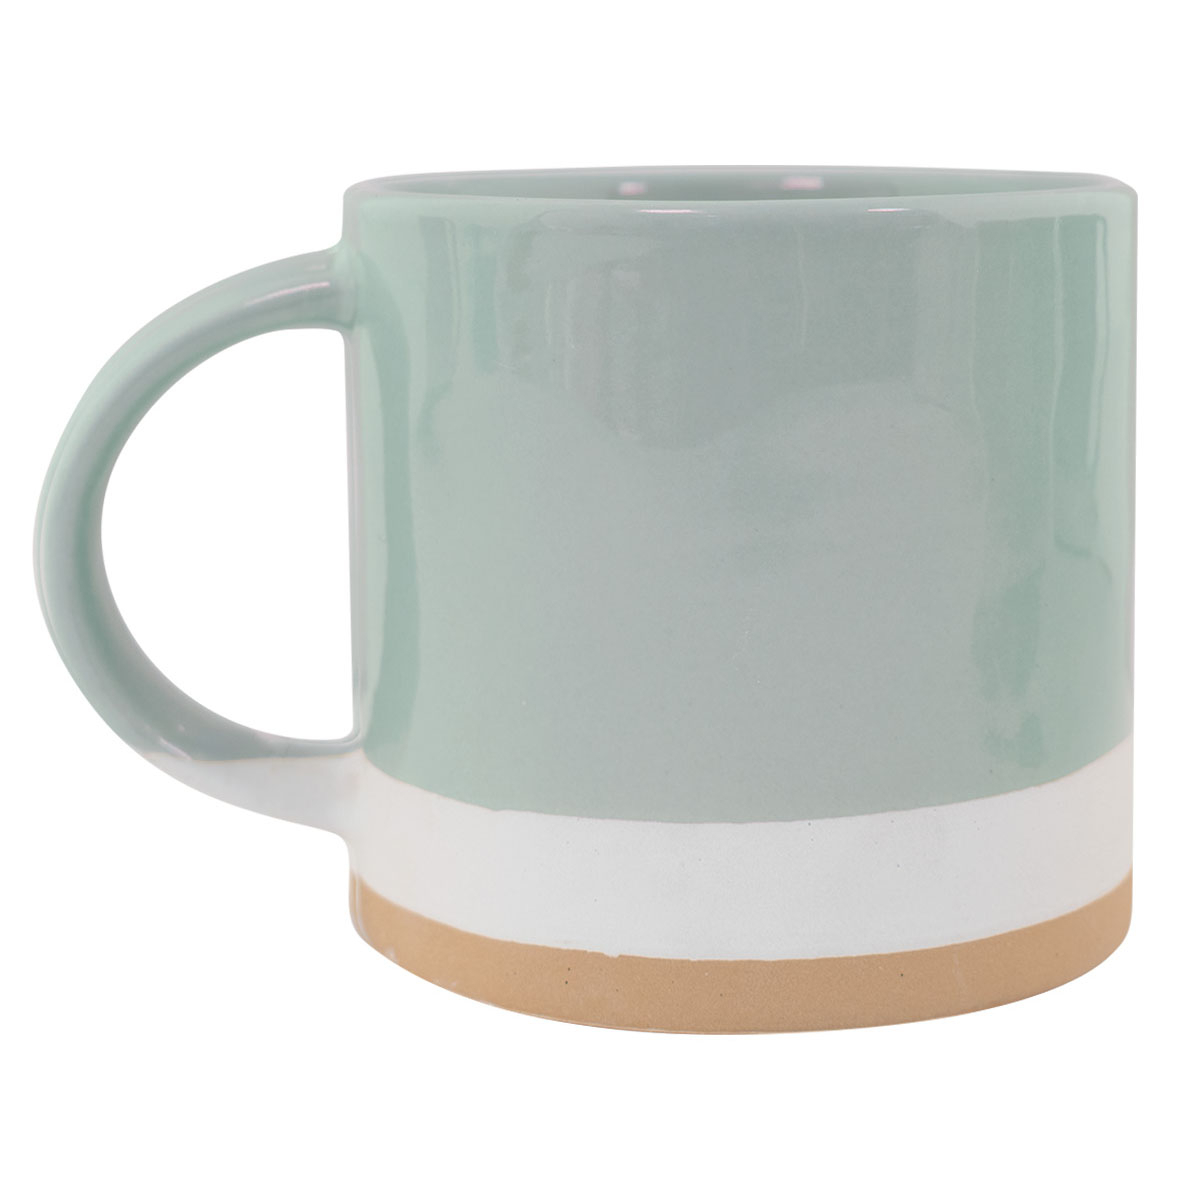 Cheesecake Hand Painted Mug - Blue in Decorative Three Stacked Coffee Tea Cups Iron Widget Wall Decor (Image 6 of 30)